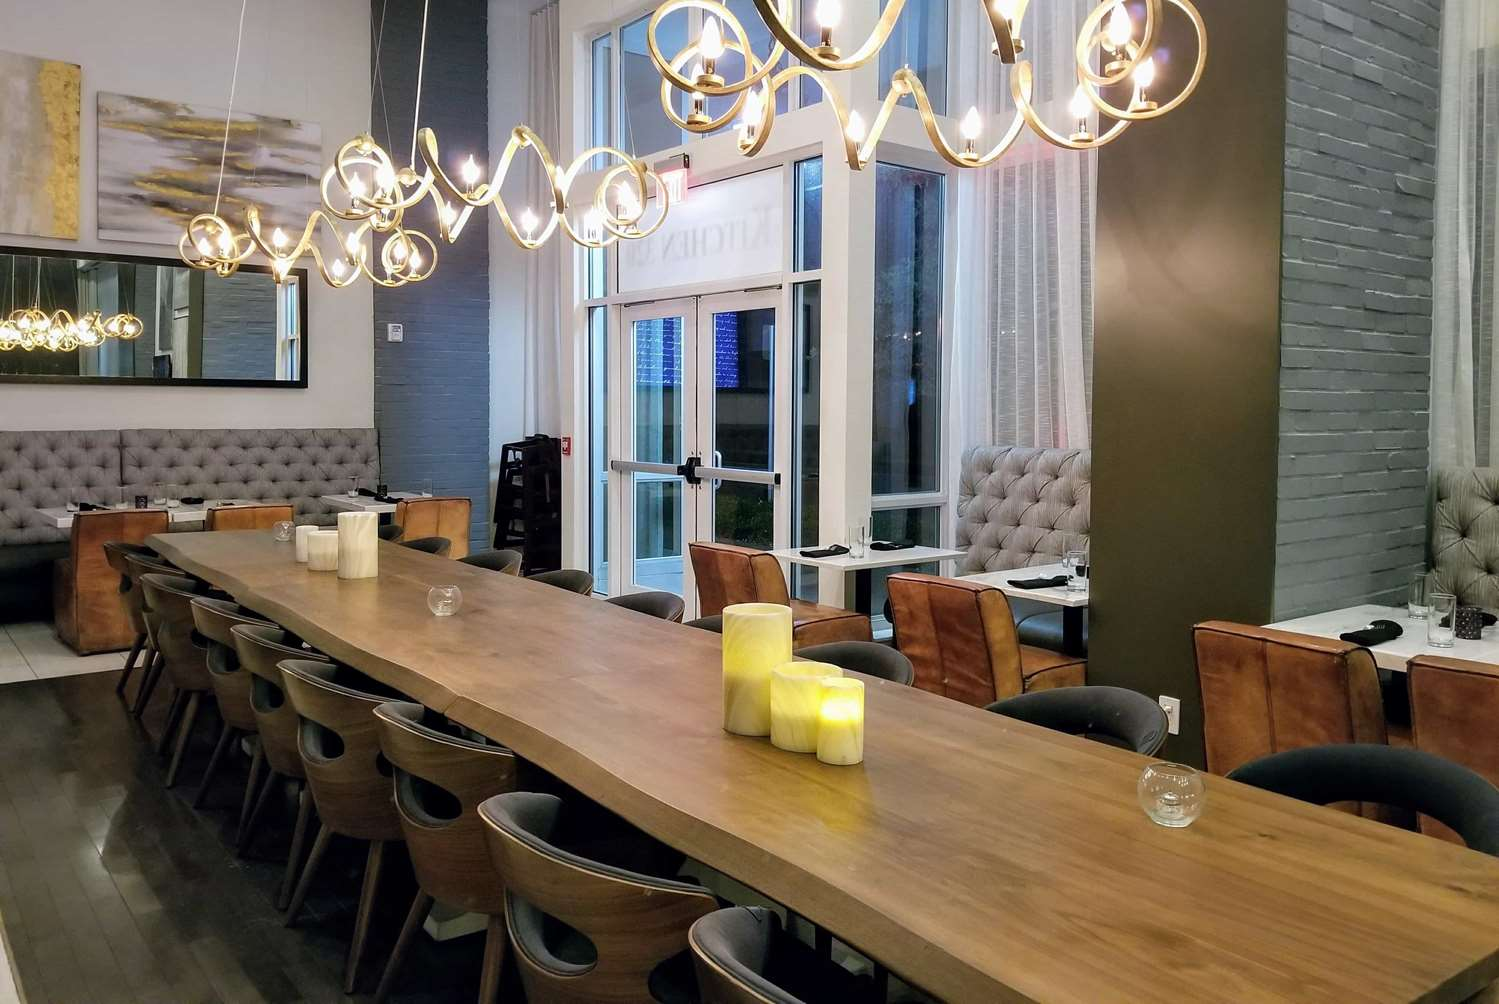 Restaurant - Tryp by Wyndham Hotel Downtown Savannah